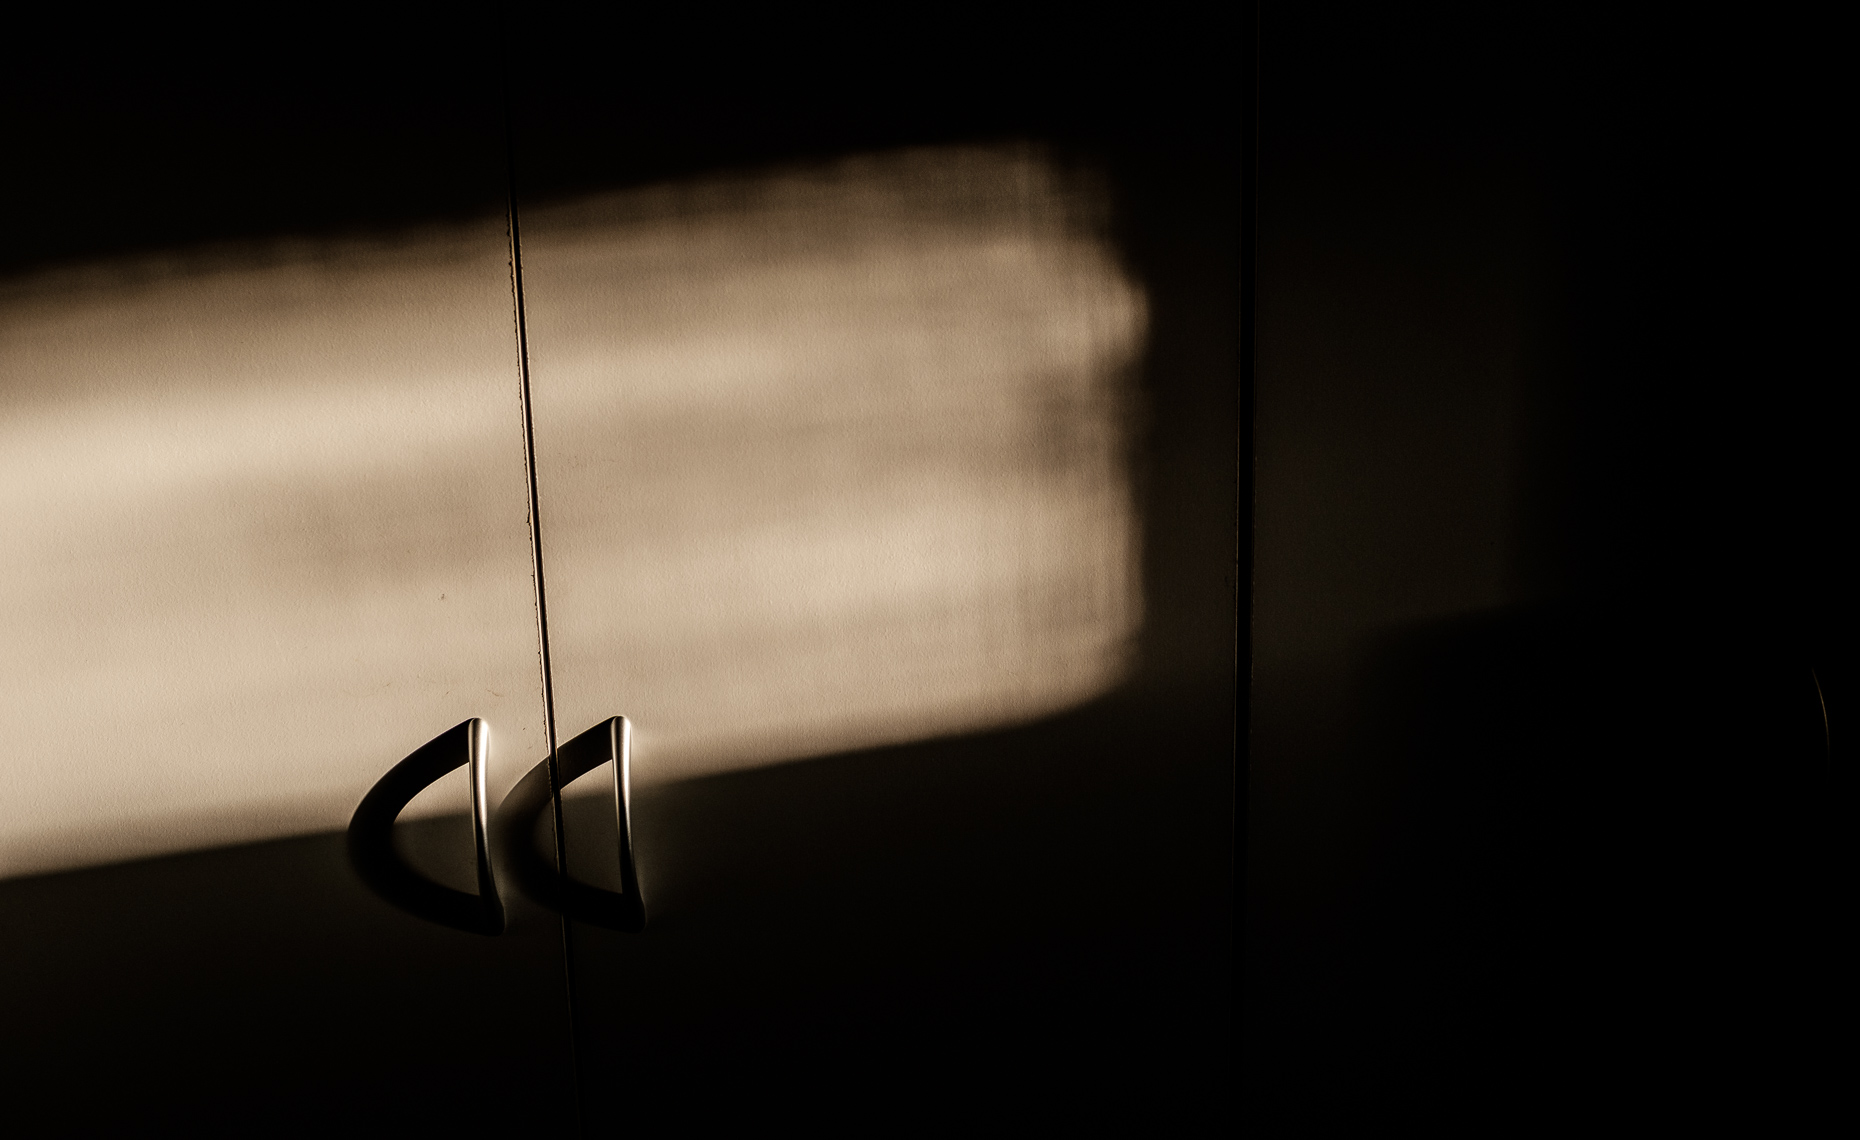 20180213_morning_light_handles